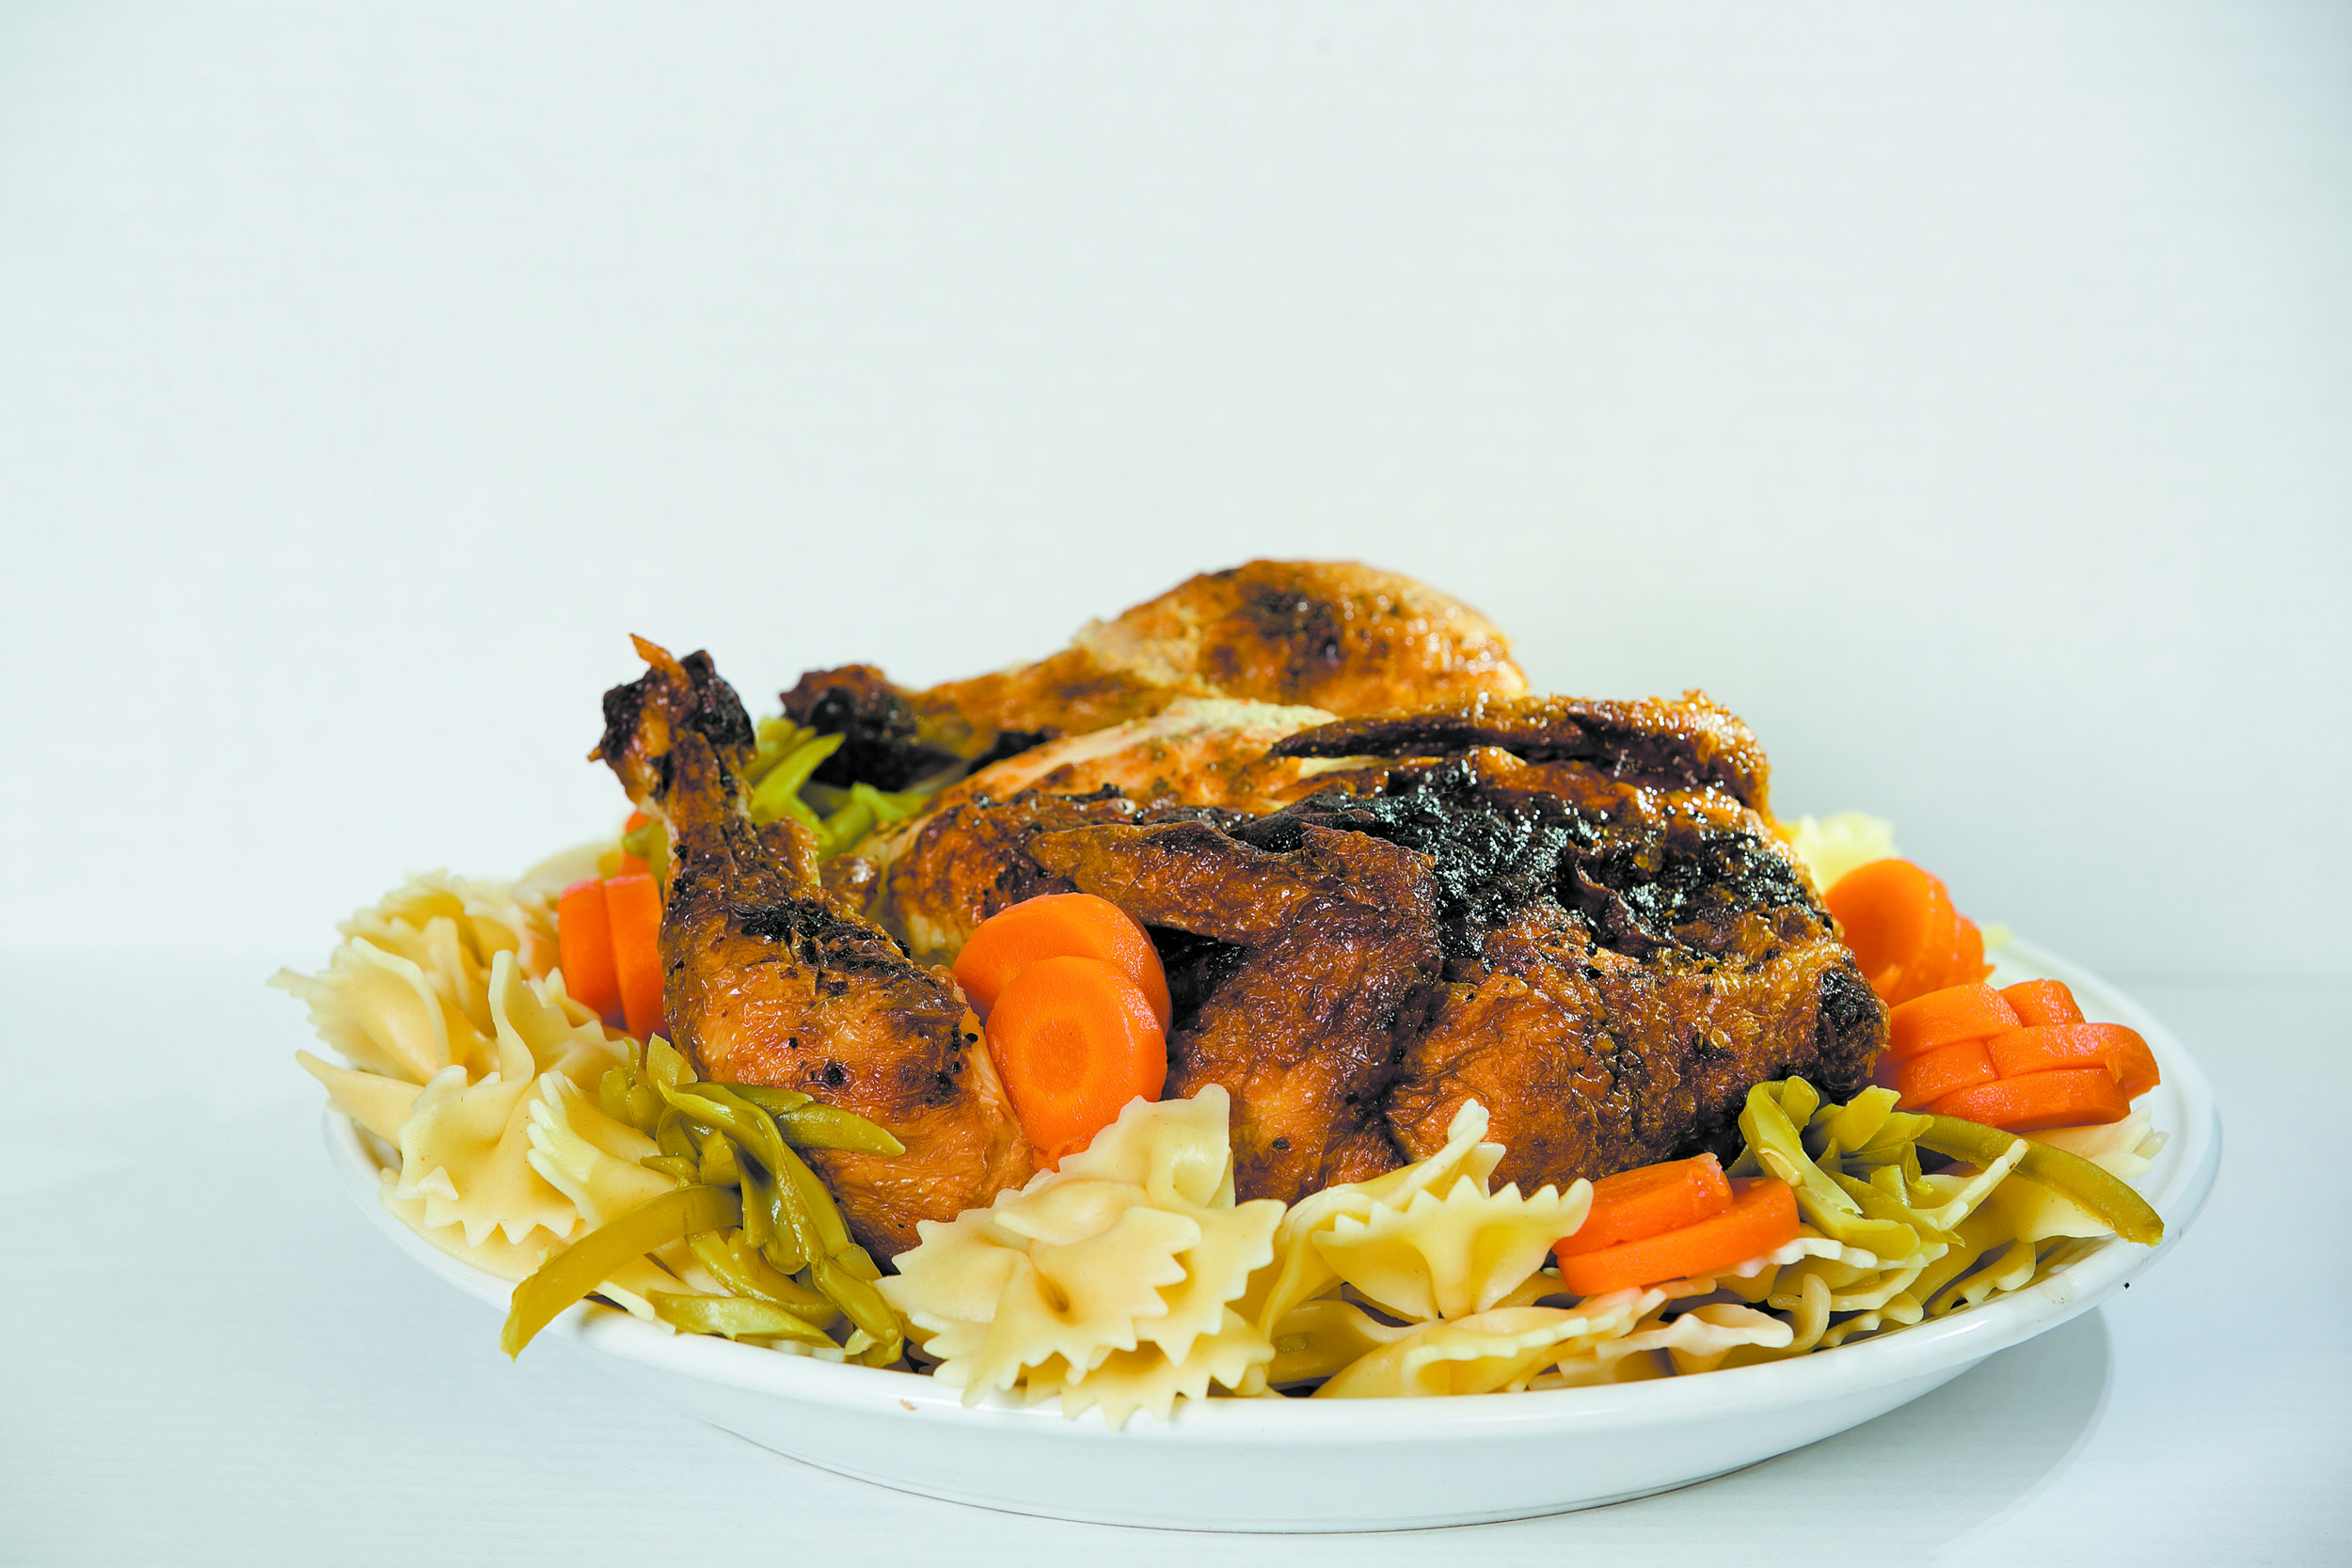 Chicken and pasta with canned veggies. Credit: Giles Clasen